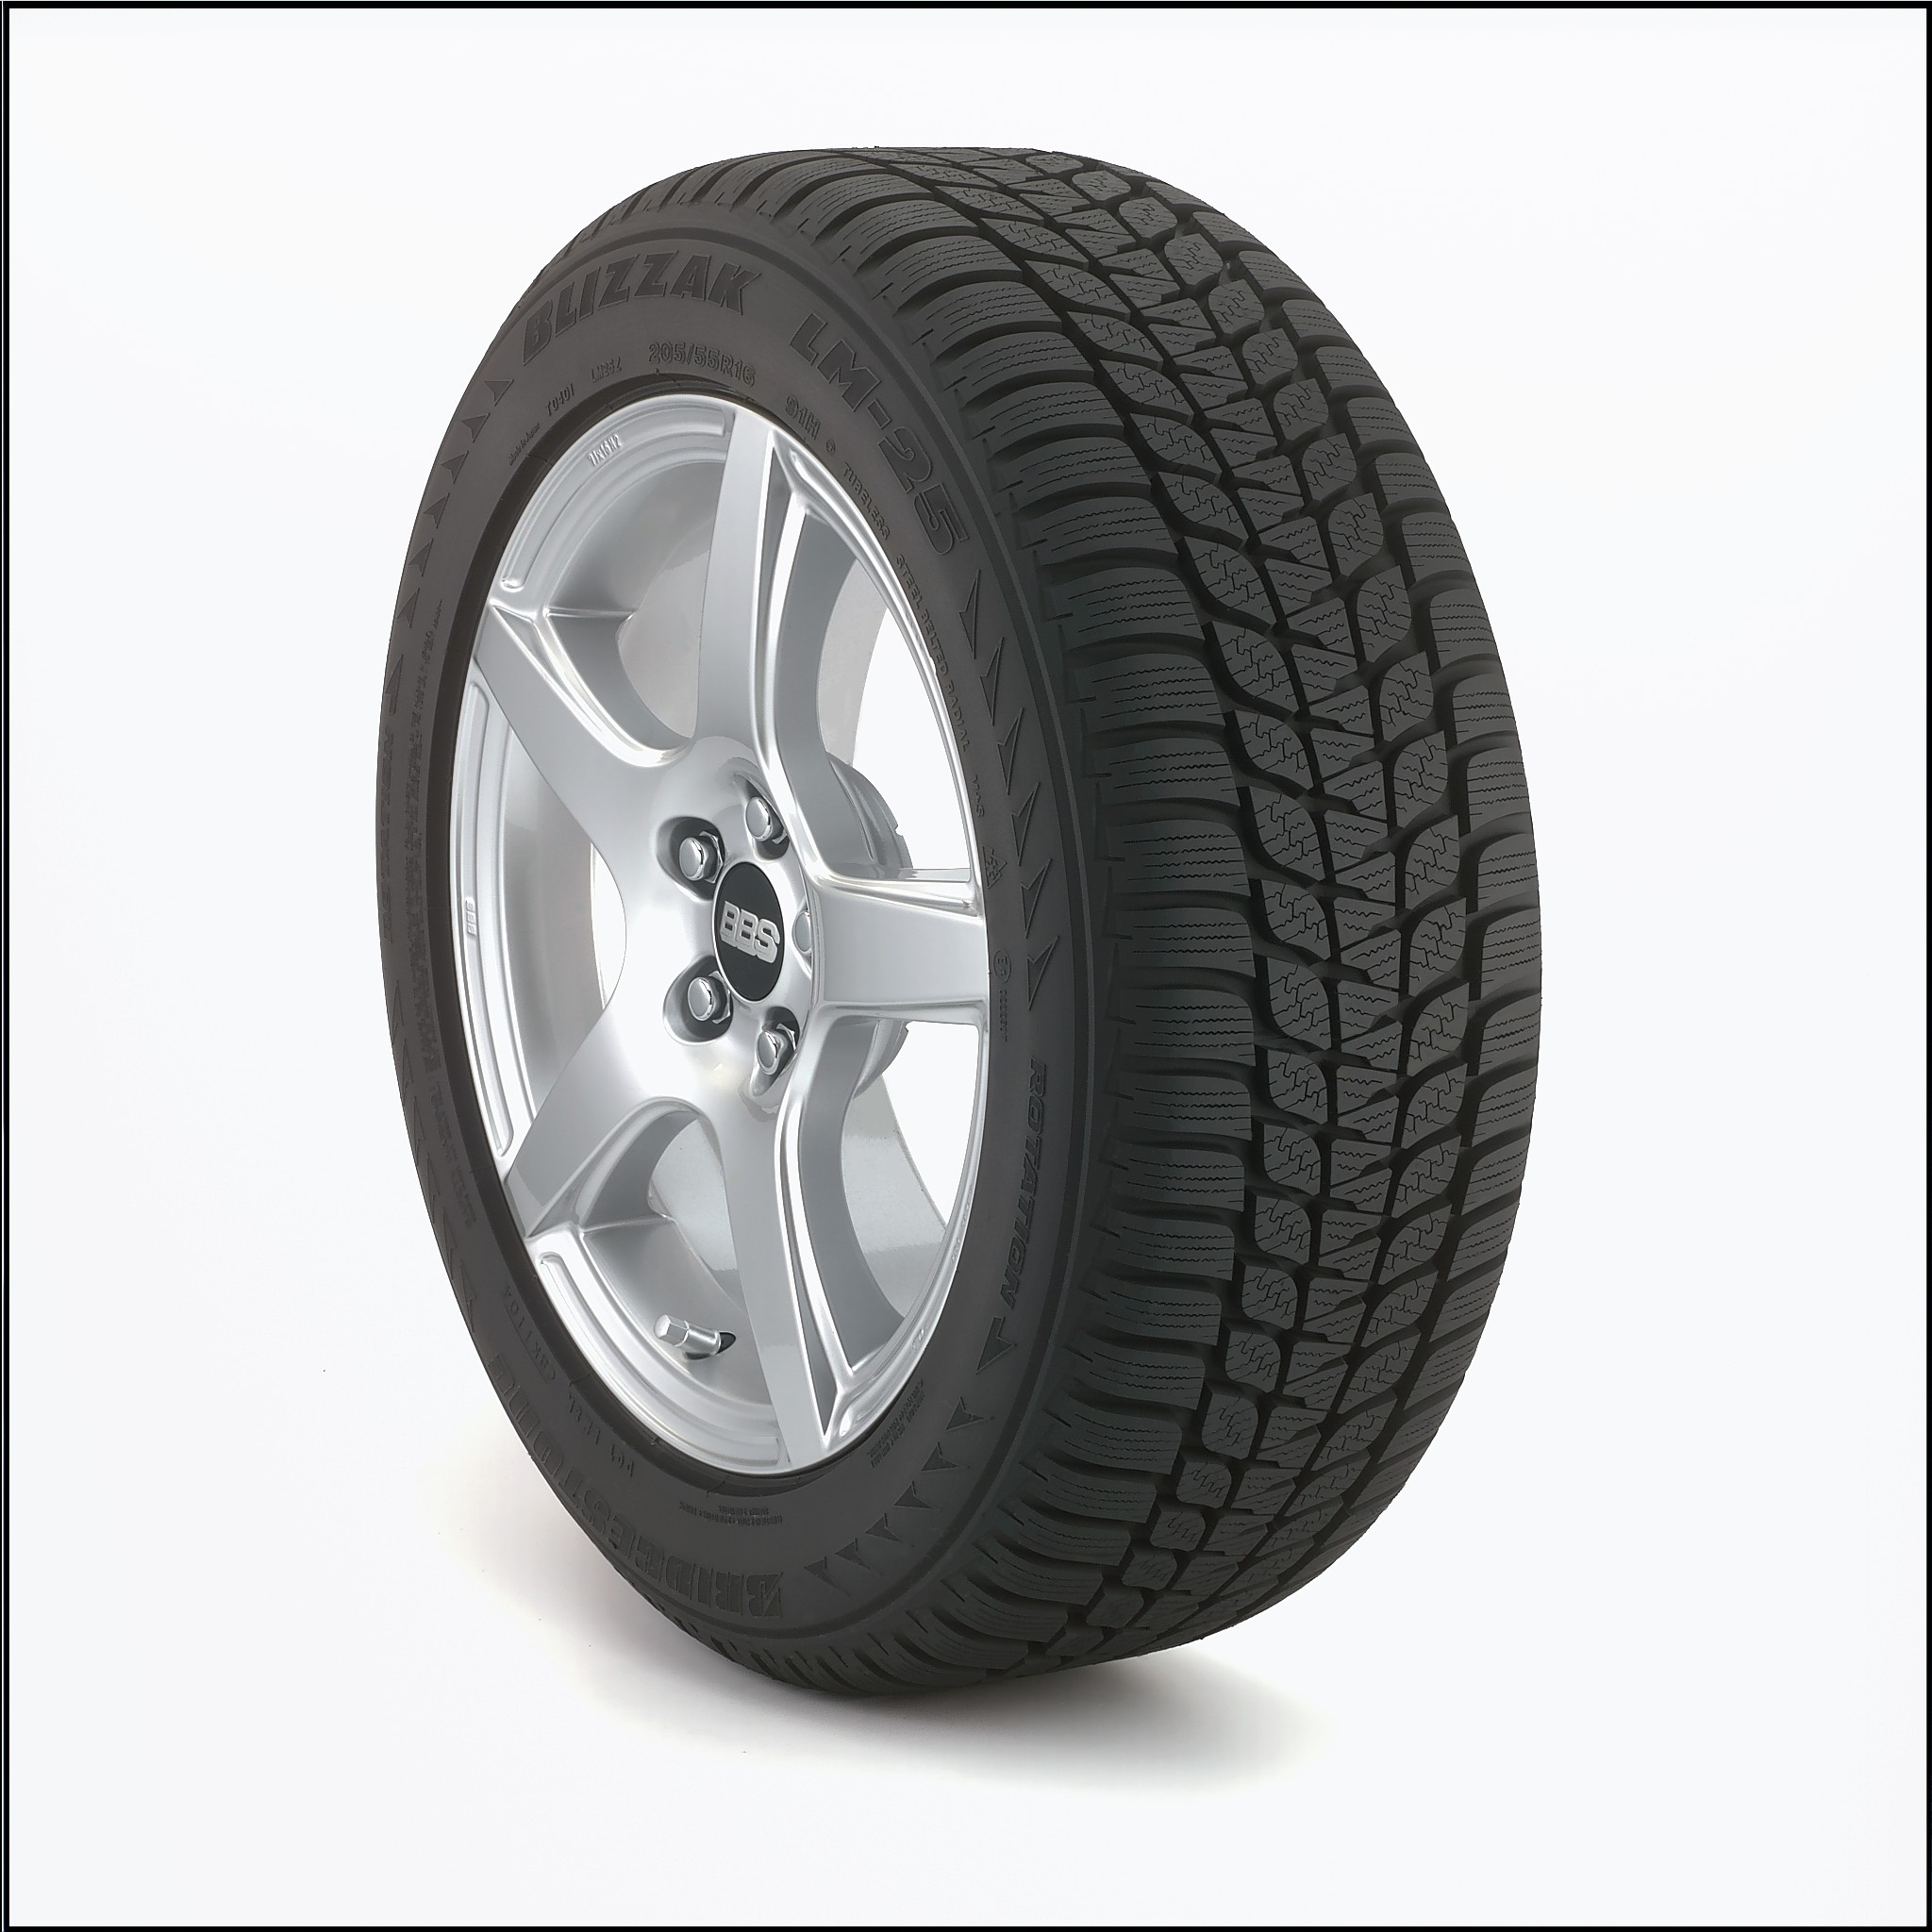 Bridgestone Winterforce Tires http://www.theautochannel.com/news/2005/07/28/138610.html